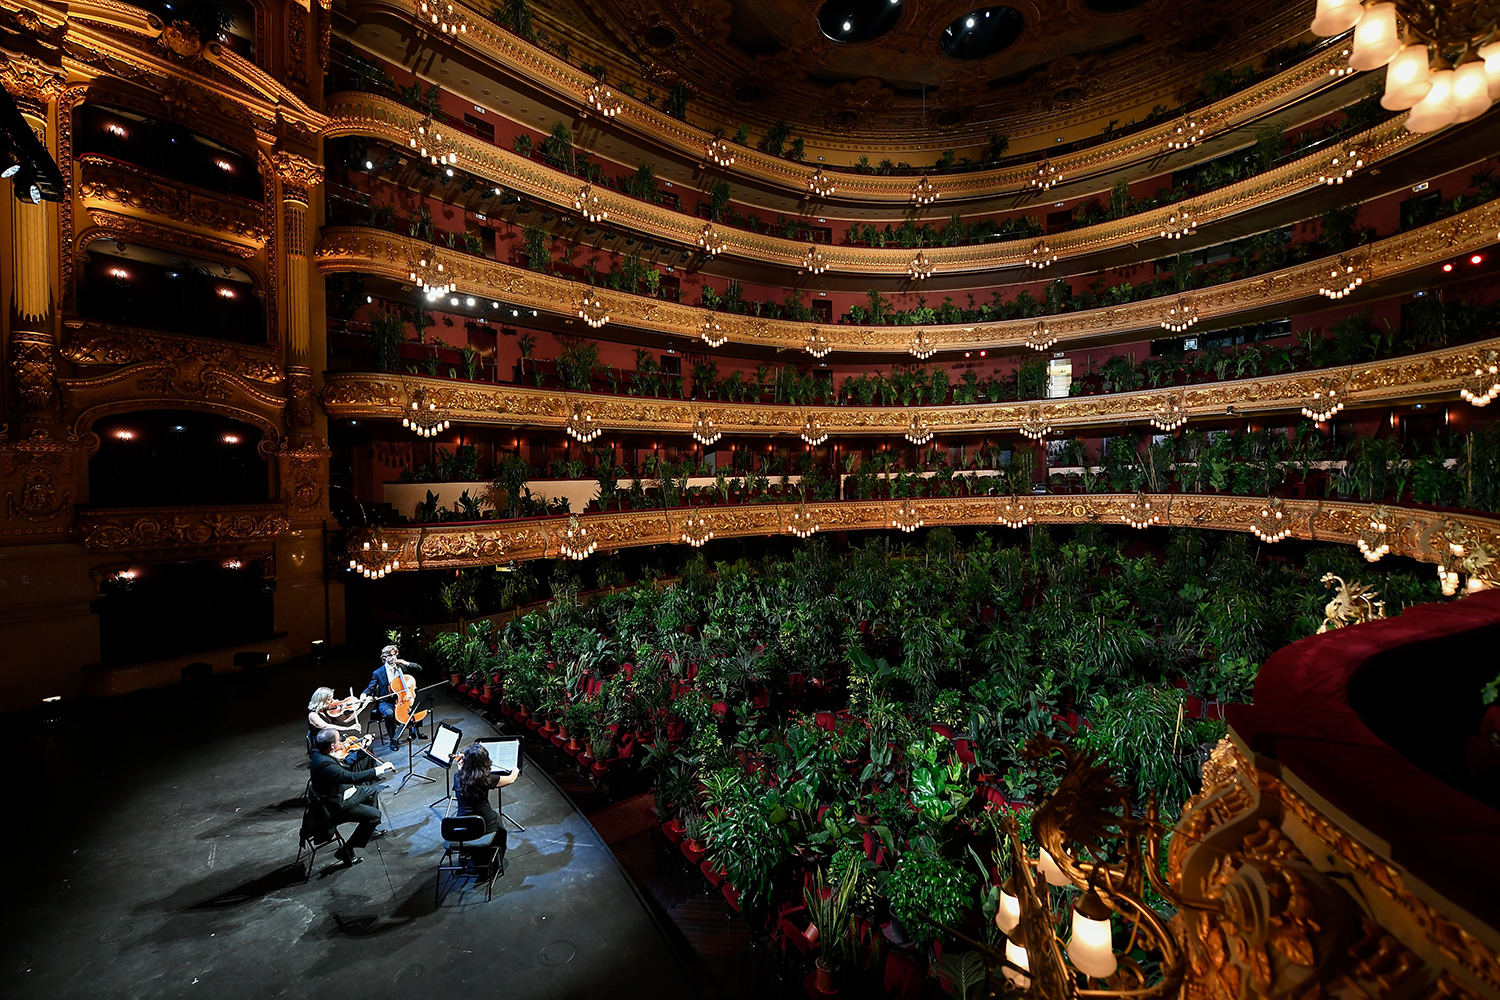 The UceLi Quartet performs for an audience of plants during a concert at the Gran Teatre del Liceu in Barcelona on June 22. LLUIS GENE/AFP via Getty Images